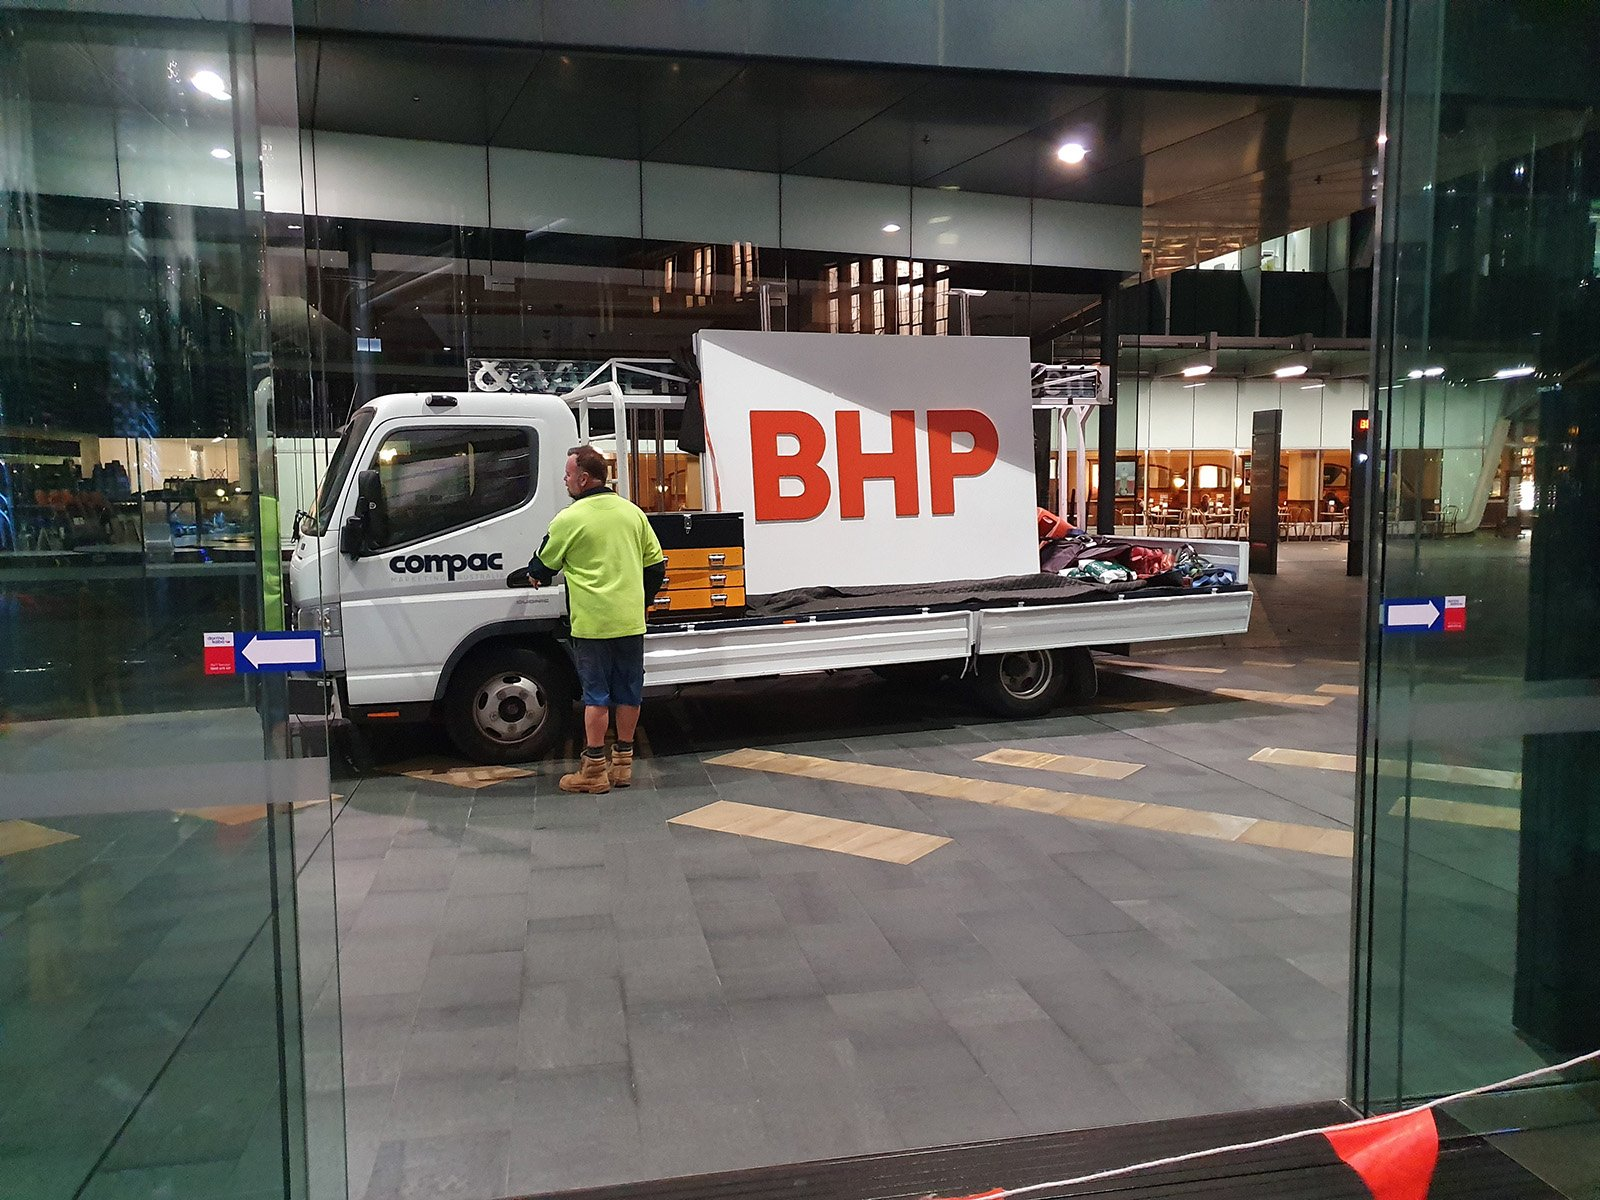 BHP re-branding double sided illuminated LED sign on the truck